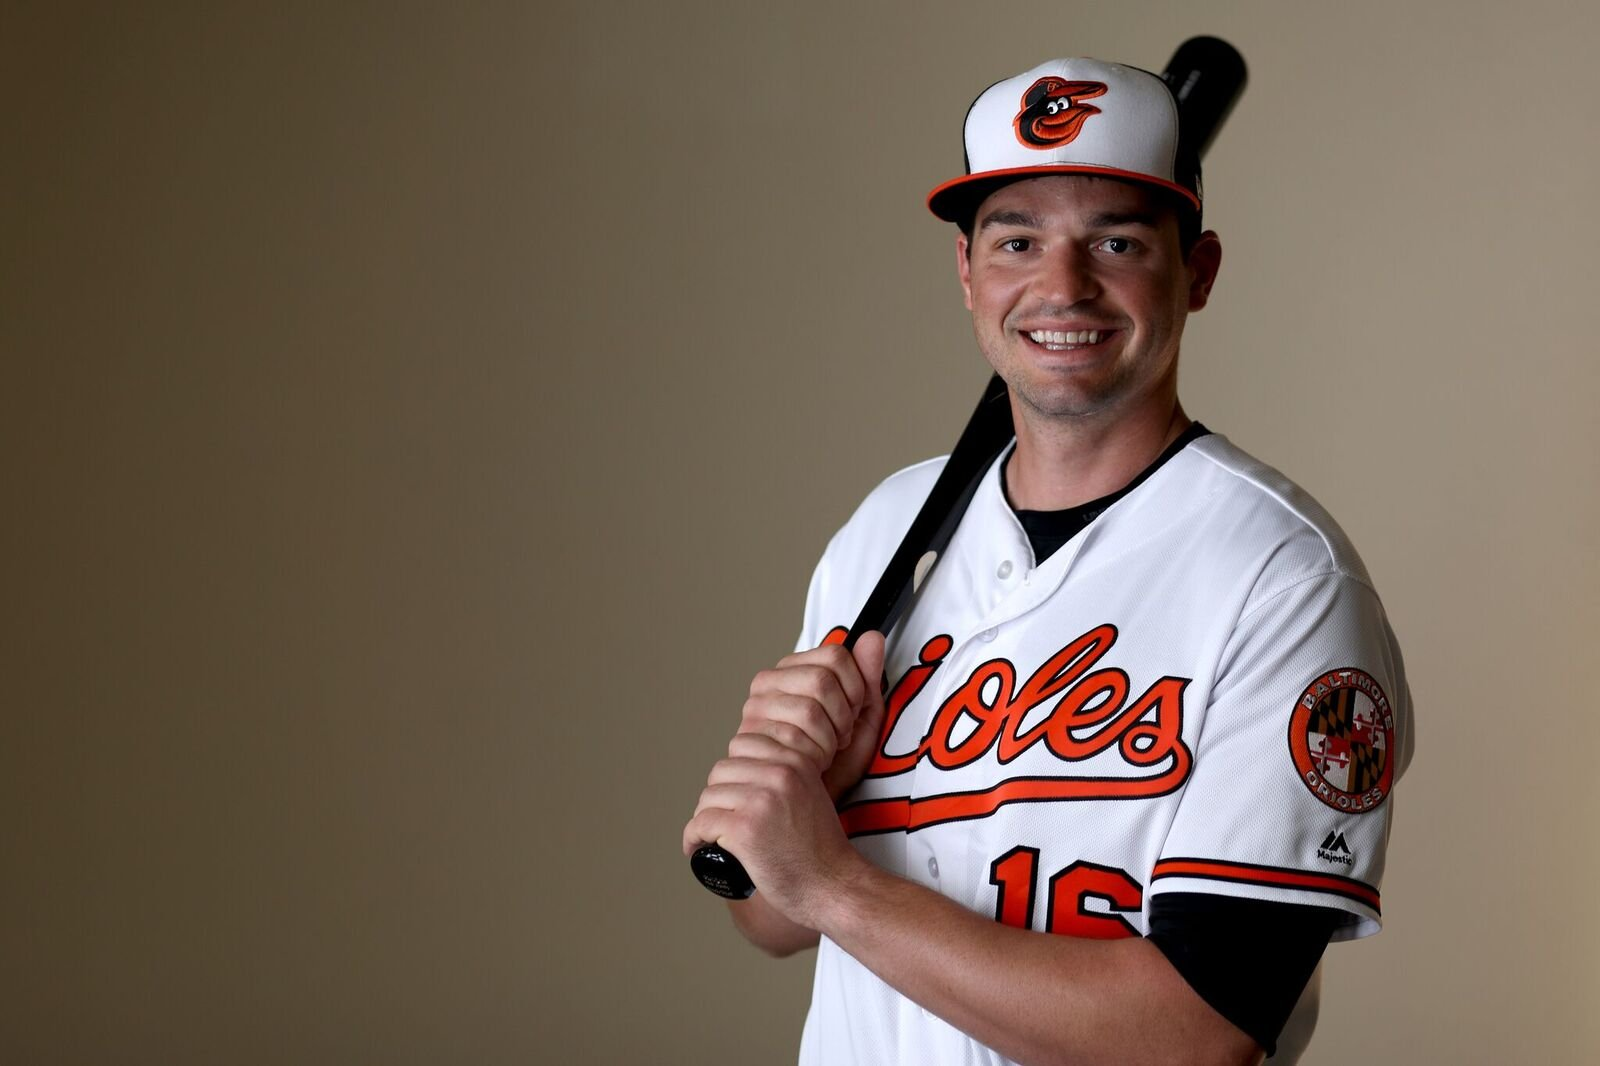 Trey Mancini poses during Photo Day in 2019 | Source: Getty Images